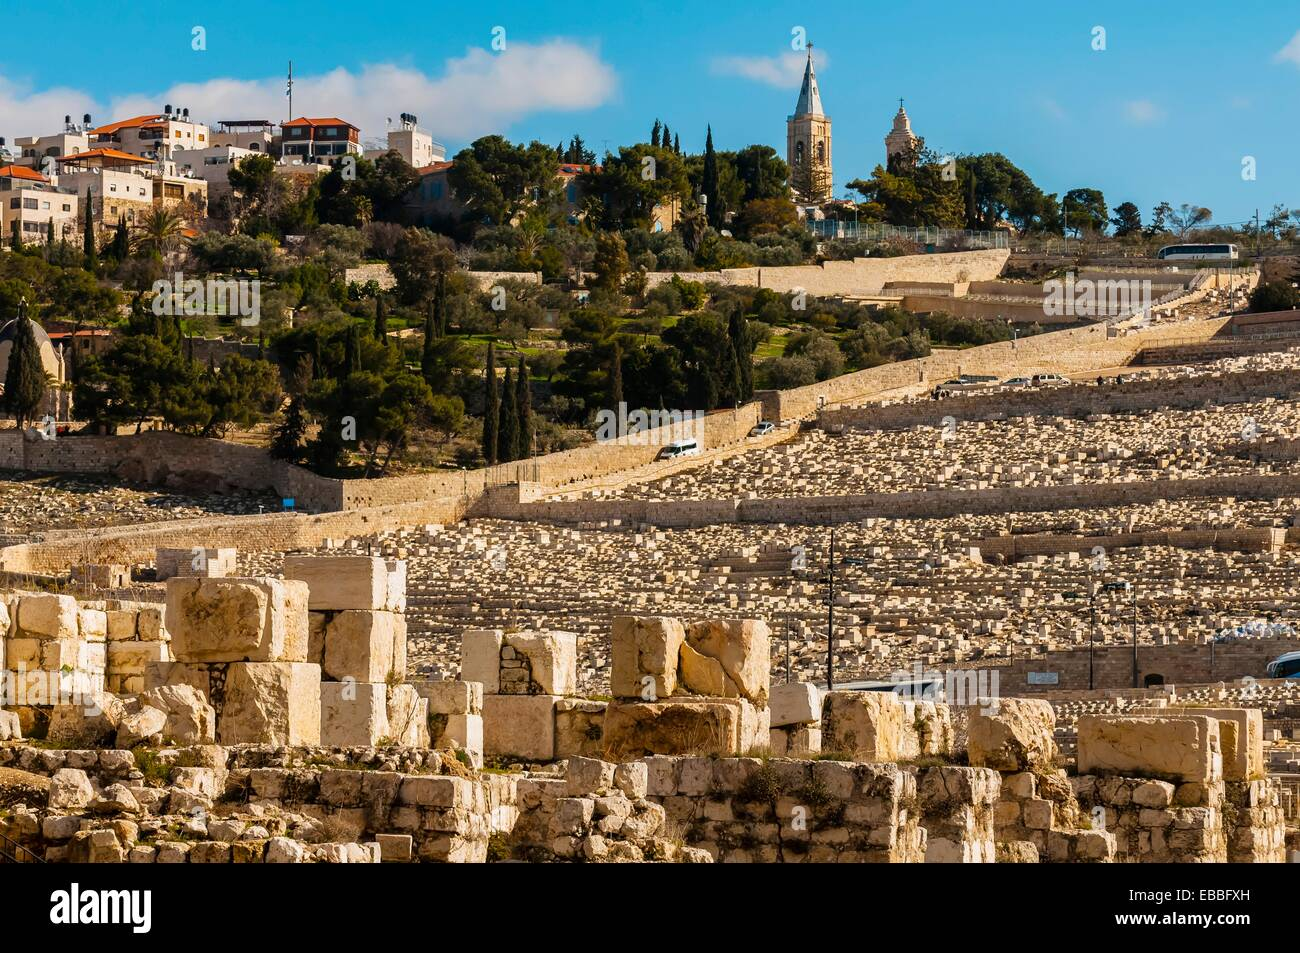 150,000 graves, Jewish Cemetery on Mout of Olives, Jerusalem, Israel Stock Photo